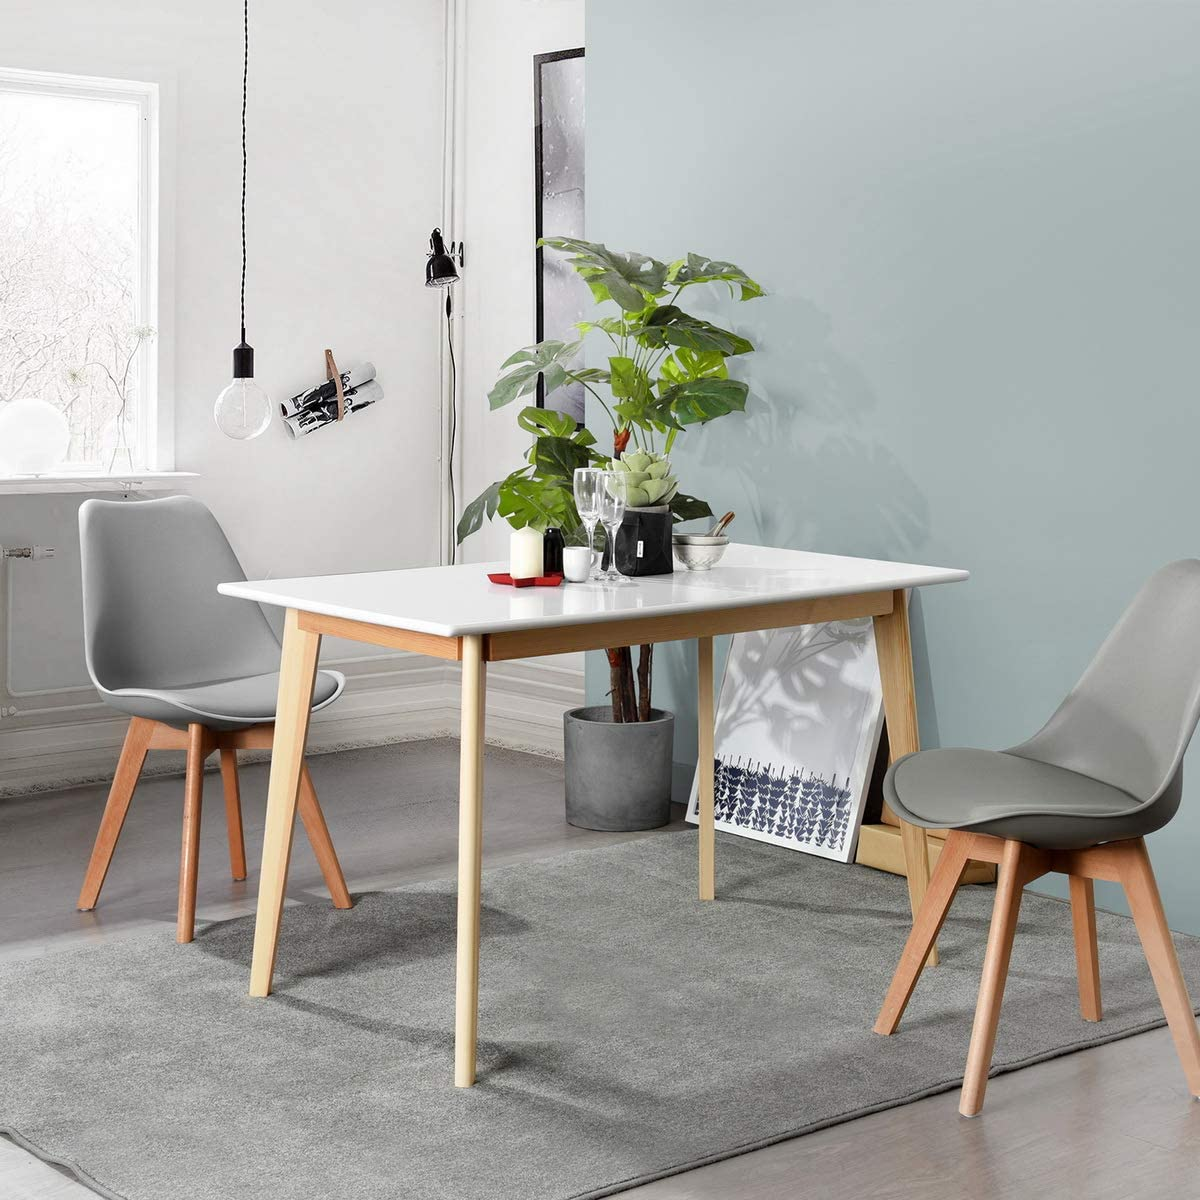 CozyCasa Kitchen Dining Table Mid-Century Simple Table Modern Solid Wood Desk for Home Office Small Spaces Kitchen Living Room in White